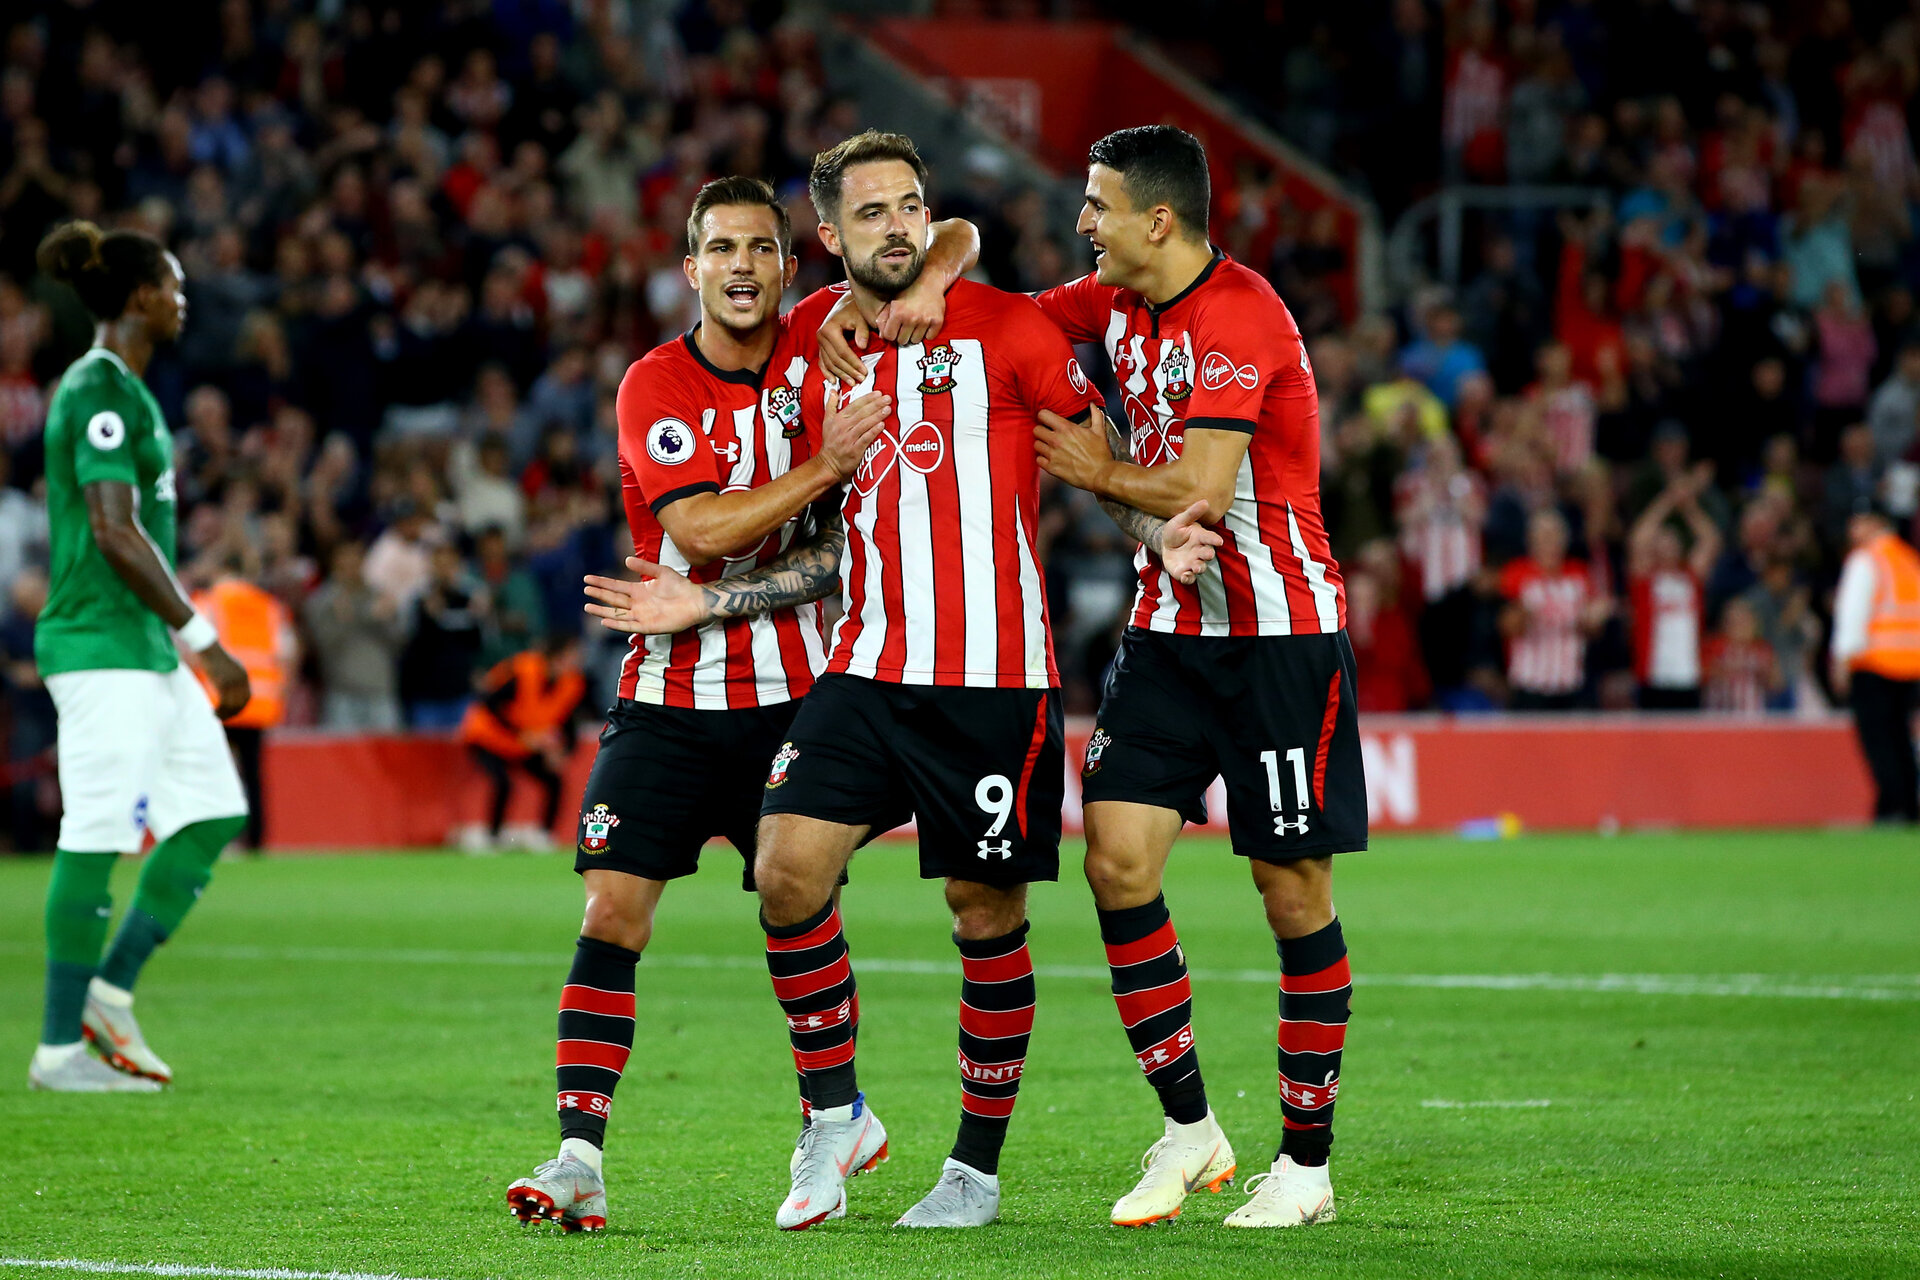 SOUTHAMPTON, ENGLAND - SEPTEMBER 17: Danny ings (middle) of Southampton FC scores from the penalty spot and celebrates with team matesf2 (left) Mohamed Elyounoussi (right) during the Premier League match between Southampton FC and Brighton & Hove Albion at St Mary's Stadium on September 17, 2018 in Southampton, United Kingdom. (Photo by James Bridle - Southampton FC/Southampton FC via Getty Images)